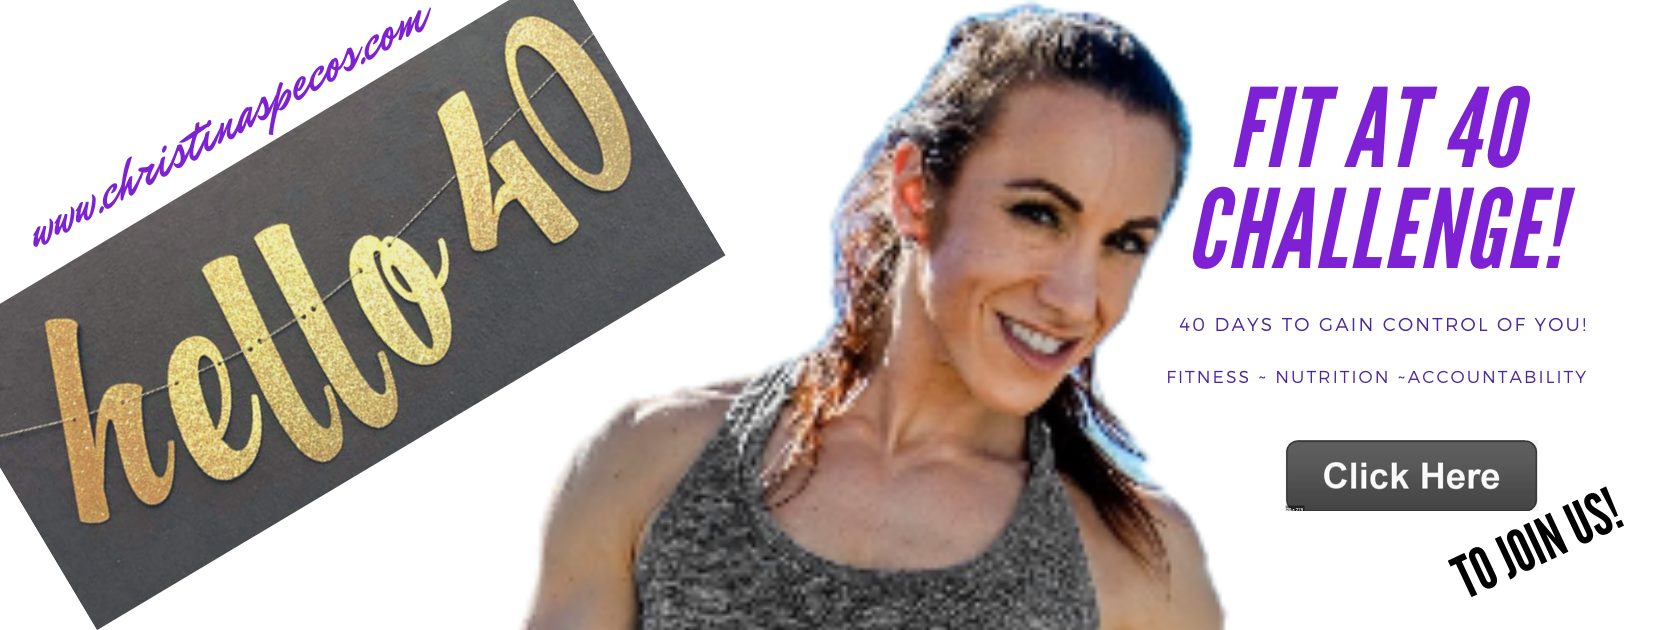 The Fit in 40 Days Challenge is here!